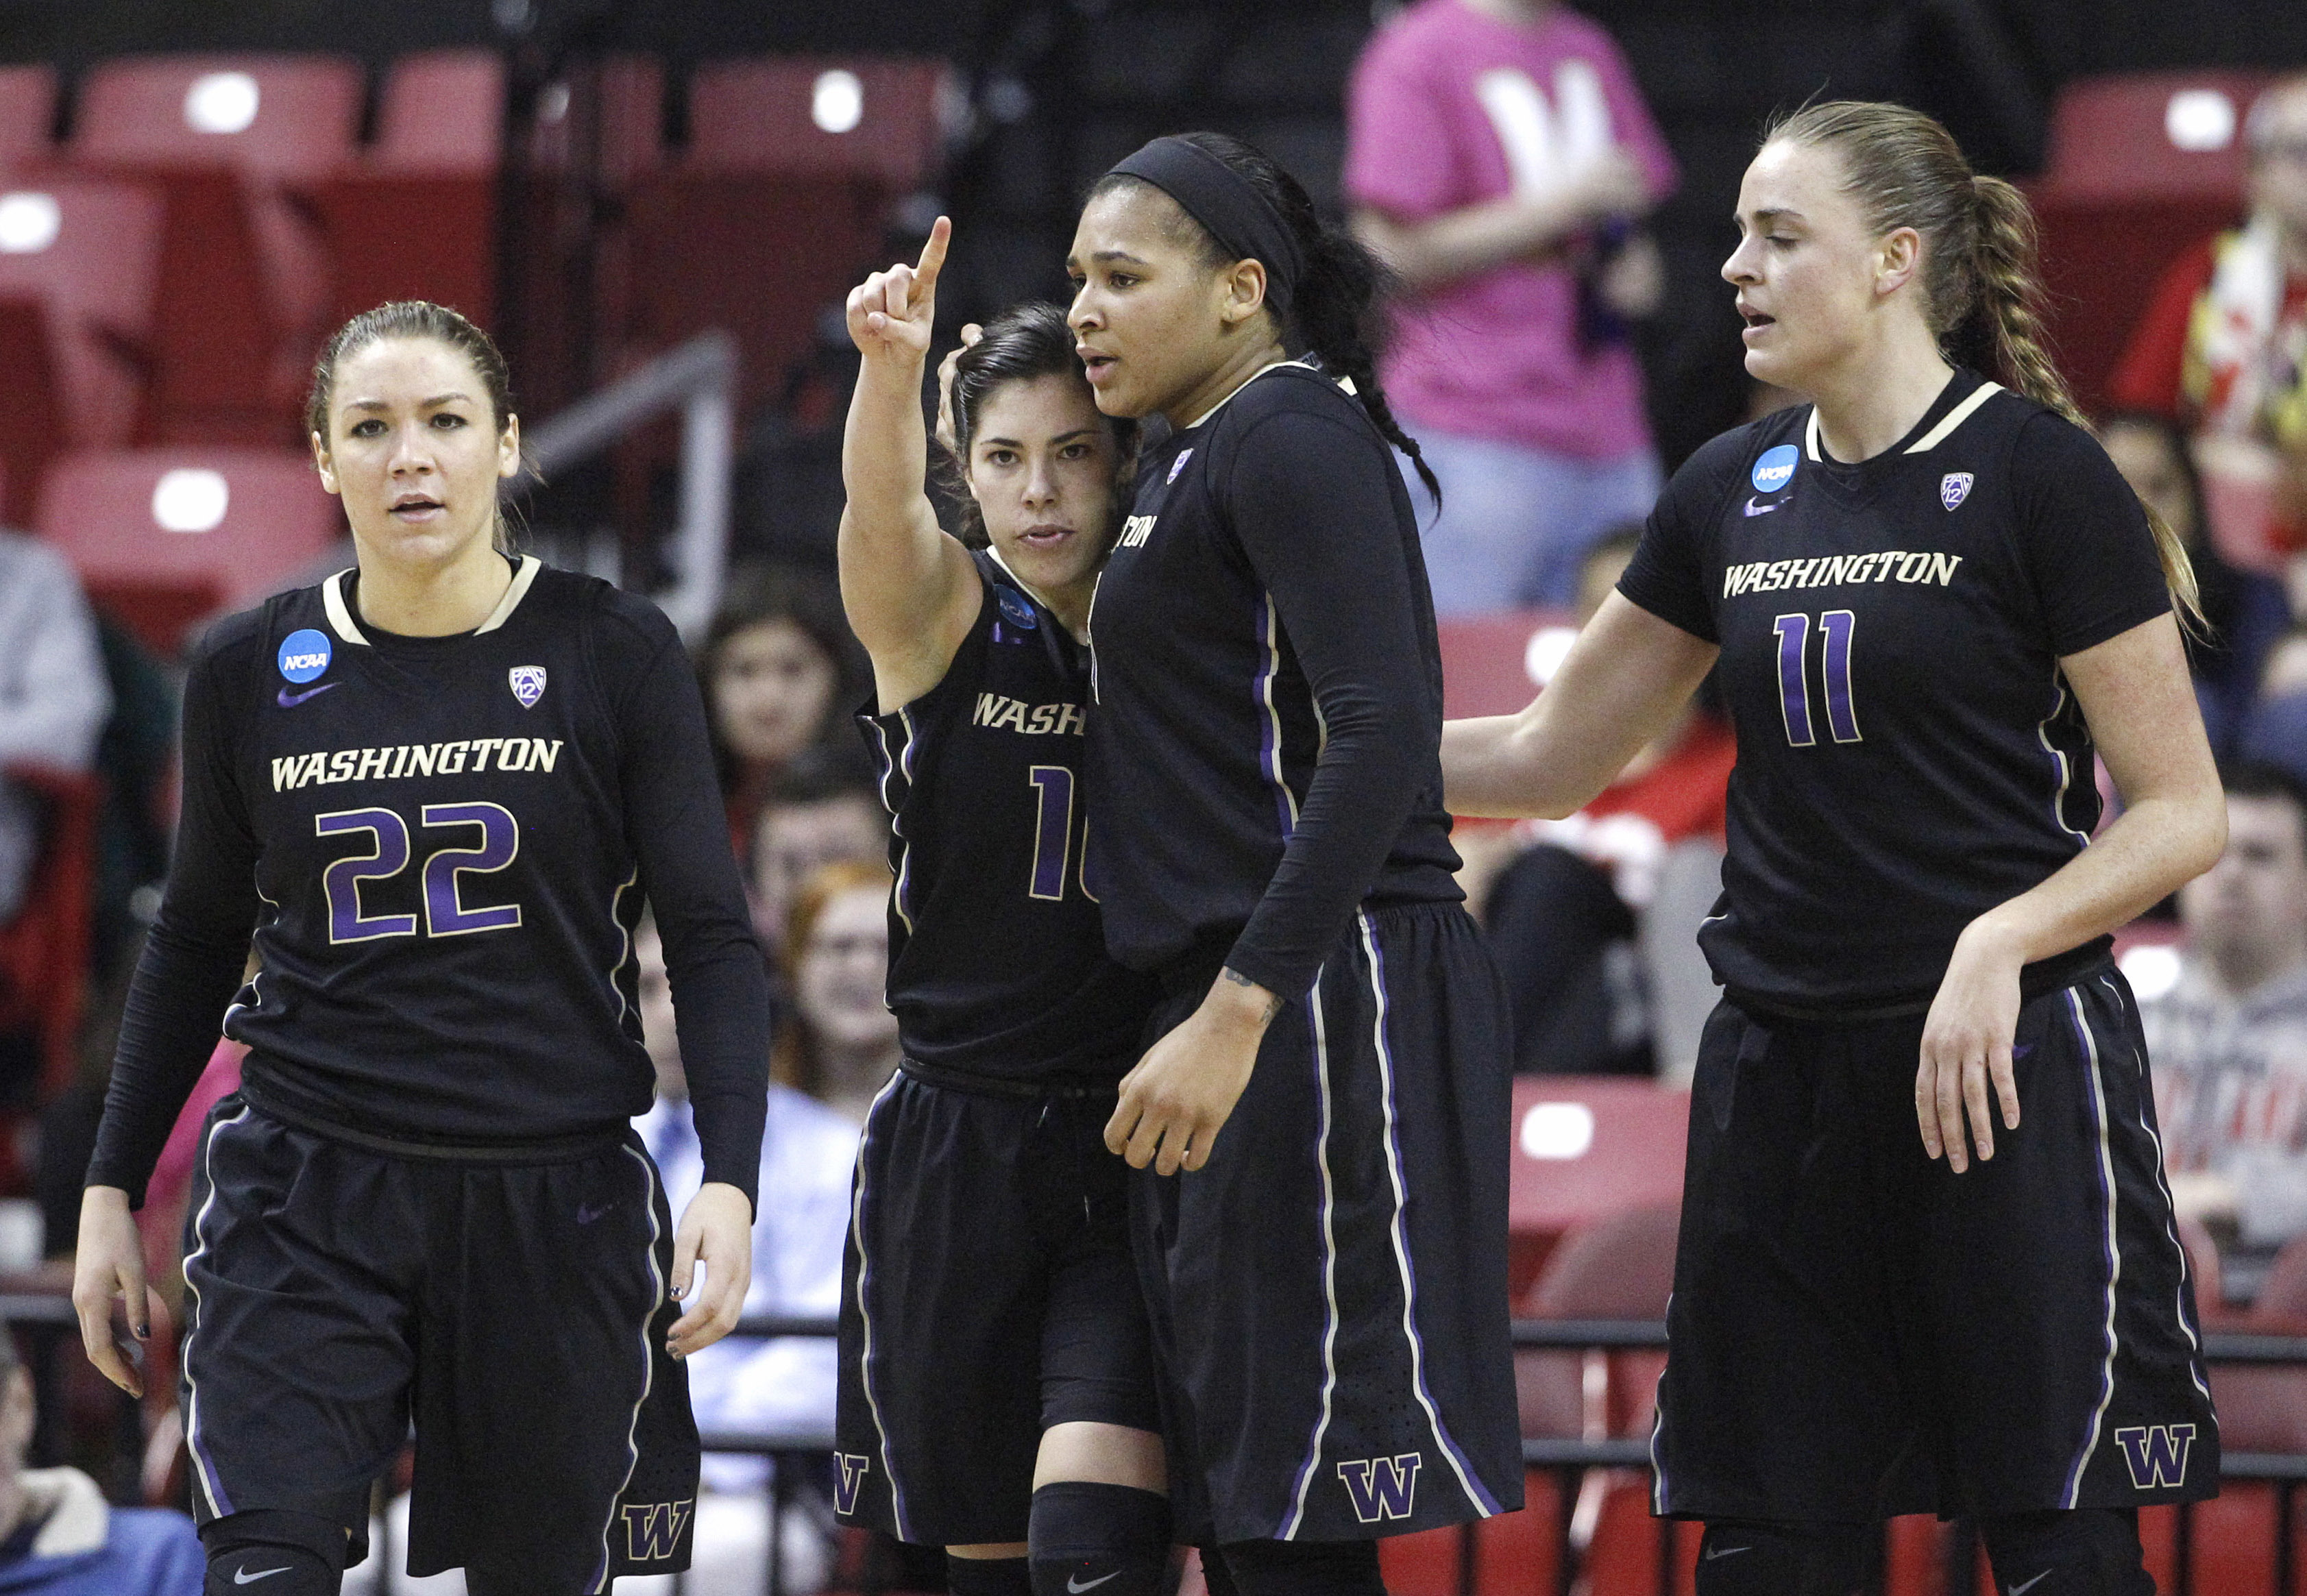 Washington guard Kelsey Plum, second from left, gestures after being fouled while shooting in the second half of an NCAA college basketball game against Maryland in the second round of the NCAA tournament, Monday, March 21, 2016, in College Park, Md. Also